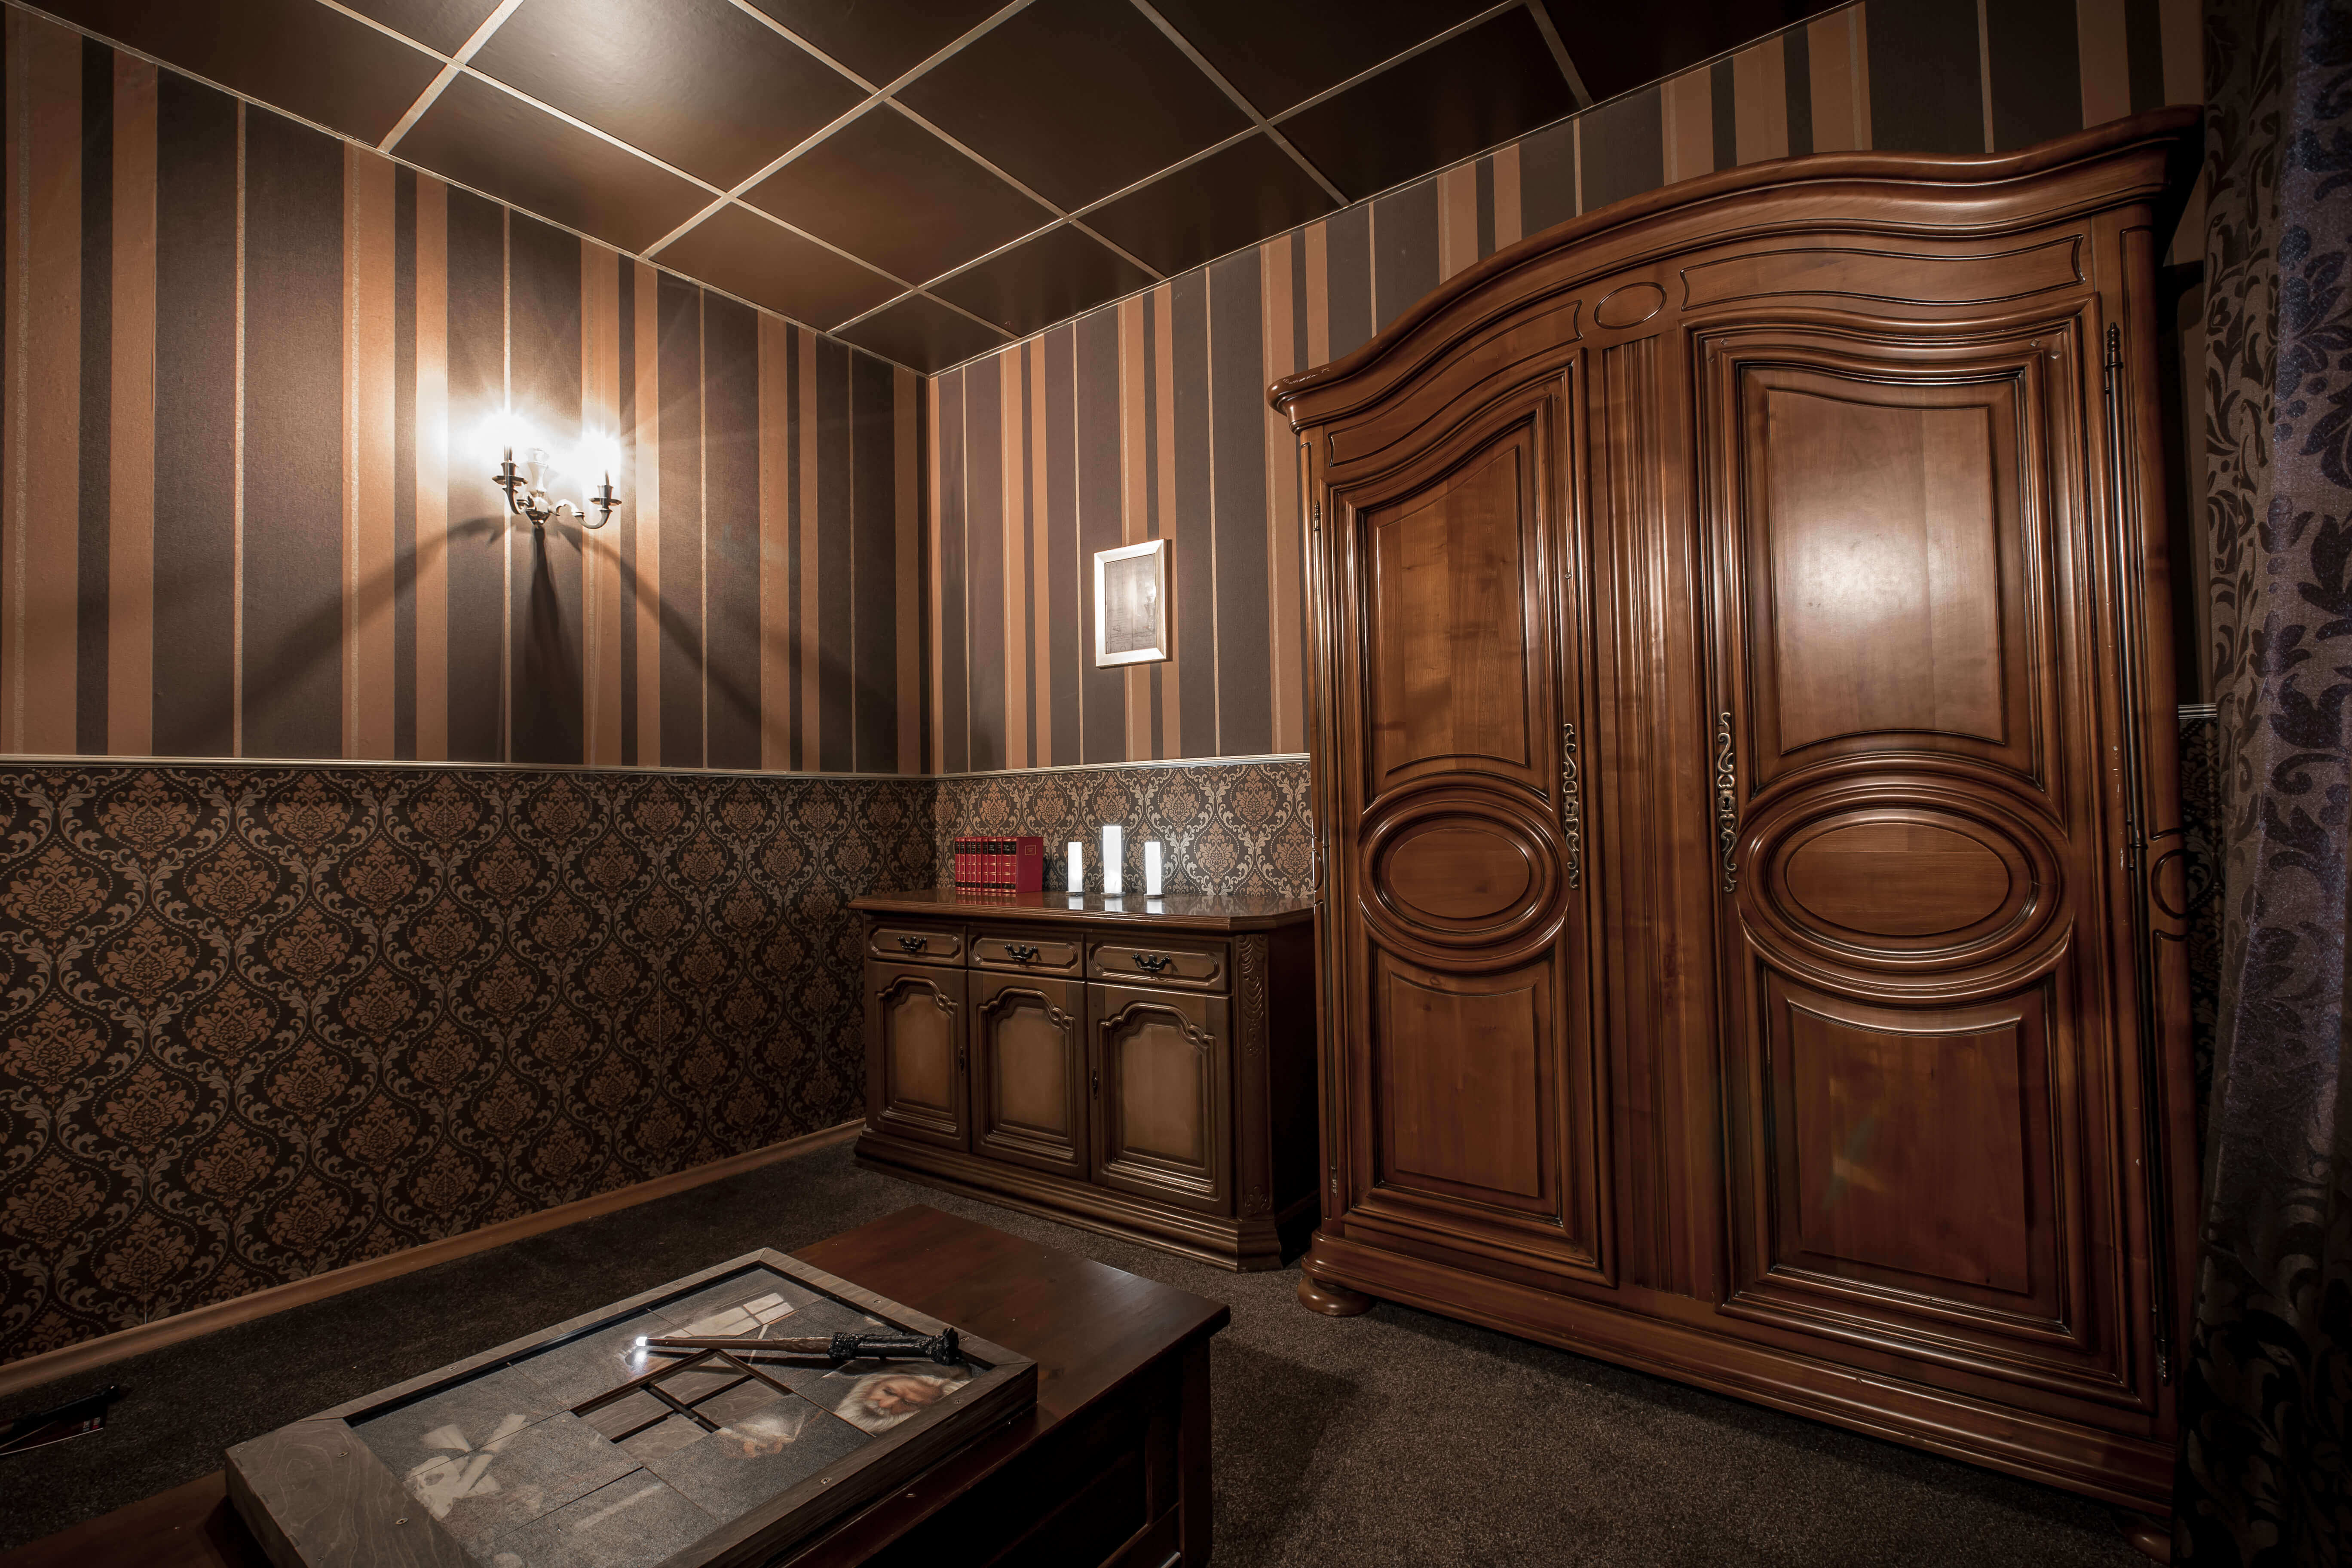 The Wizard S Cabinet Live Escape Room At Labyrintoom Berlin